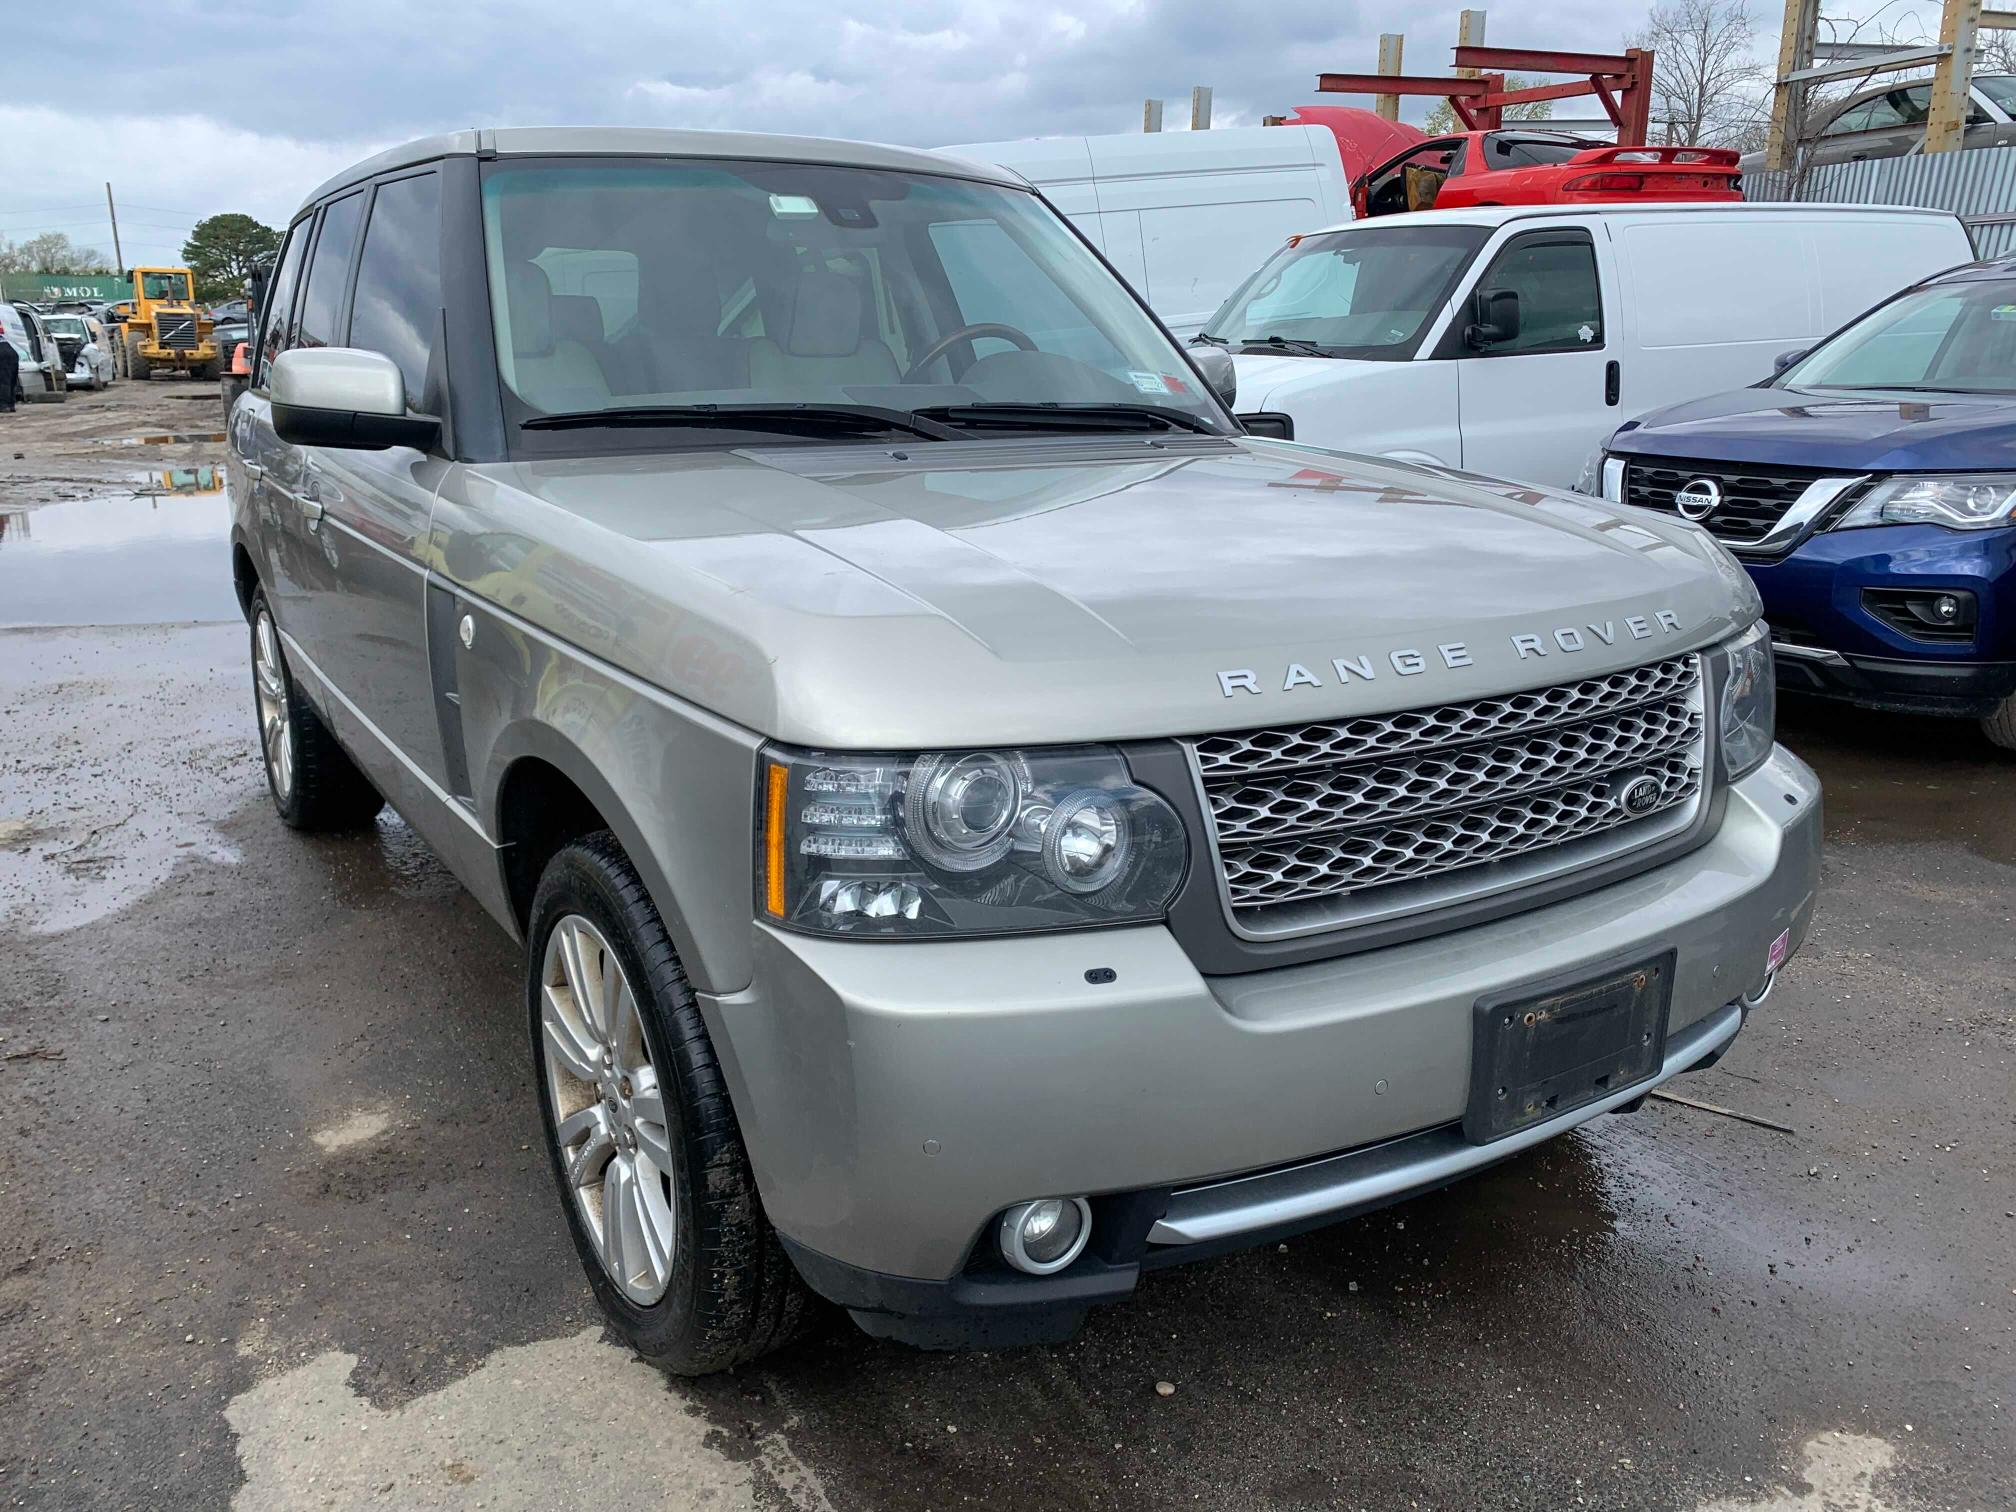 Salvage cars for sale from Copart Brookhaven, NY: 2010 Land Rover Range Rover